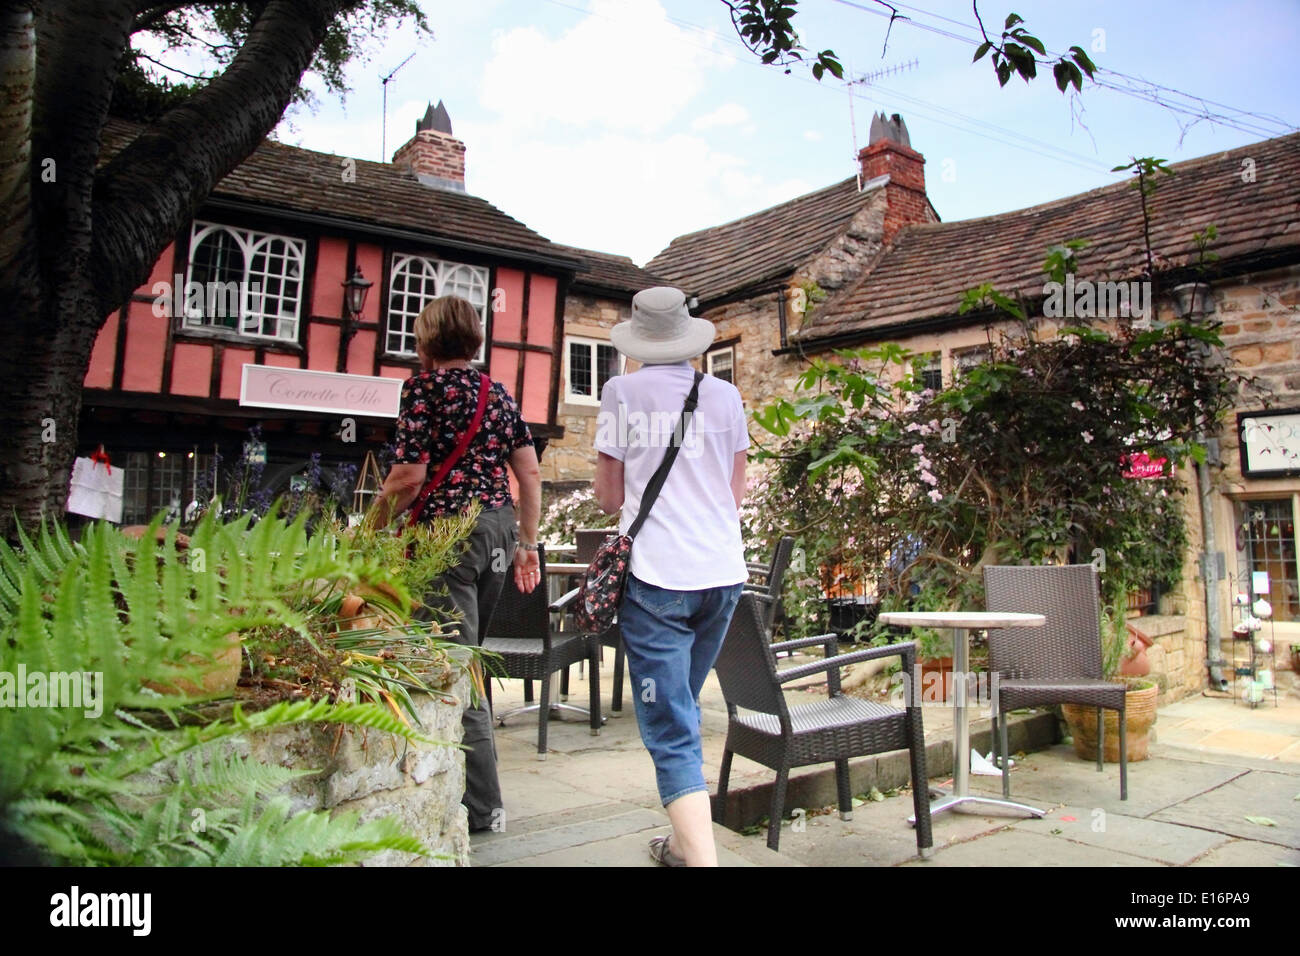 Tourists peruse the shops in King's Court, Bakewell, Peak District, Derbyshire, England, UK - summer - Stock Image